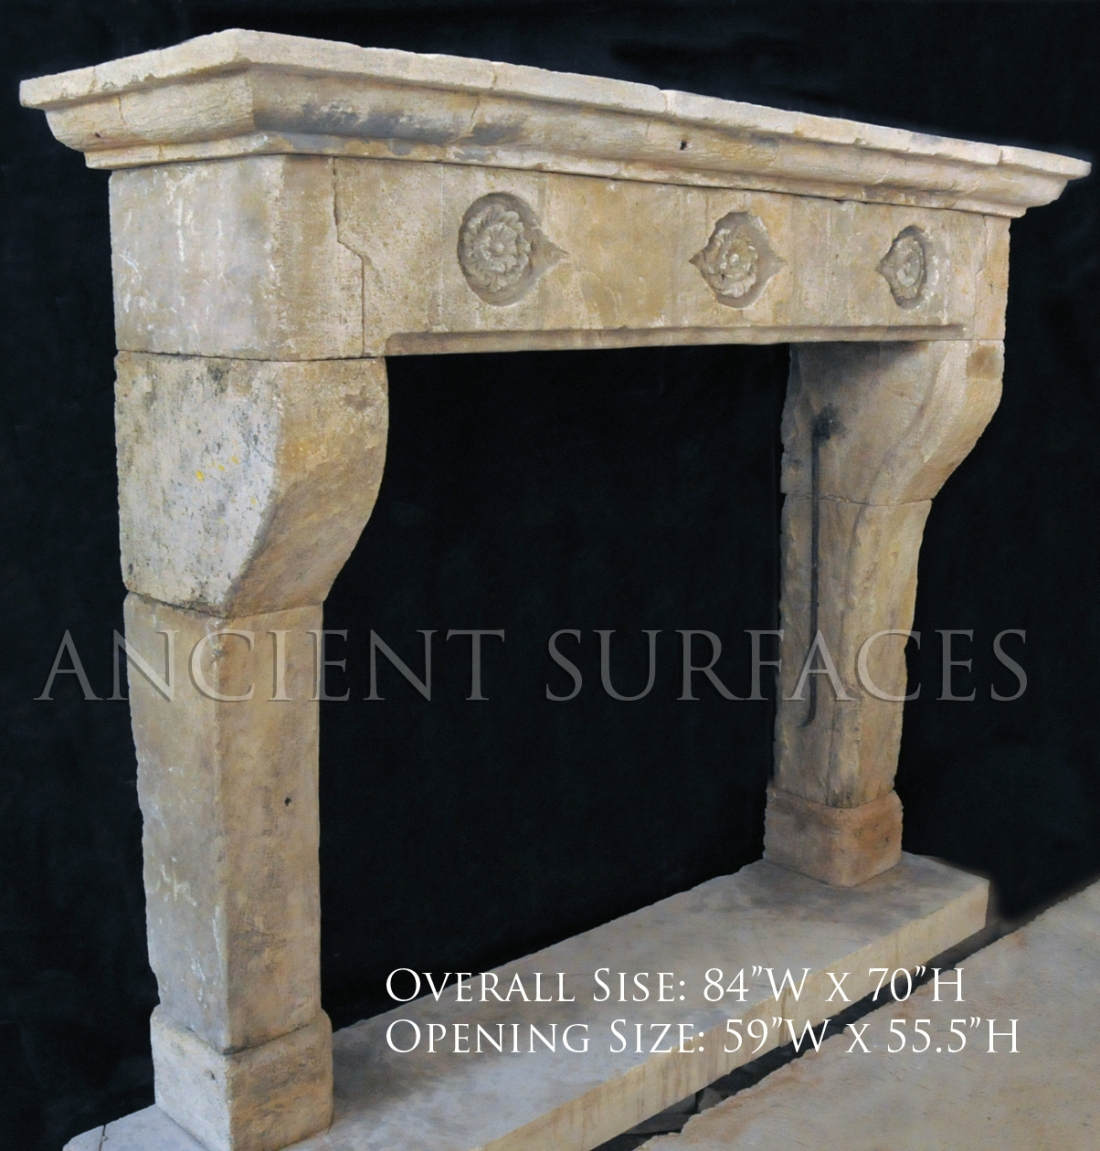 Antique reclaimed English fireplace mantel with Gothic Tudor Rosettes carved on its front